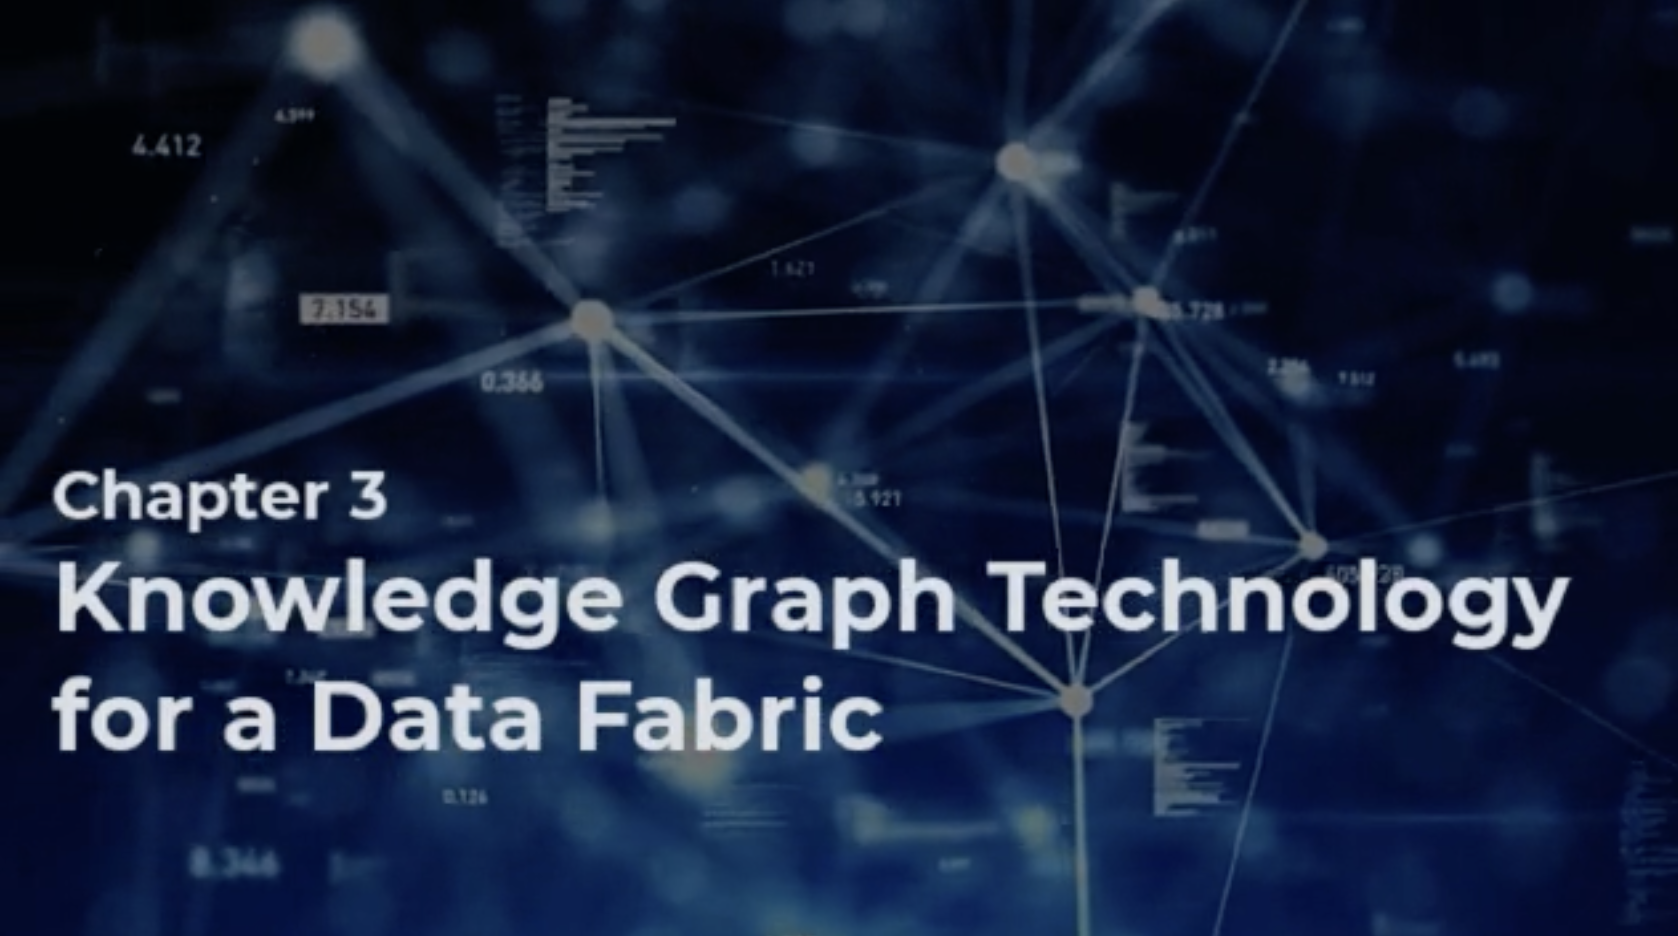 Knowledge Graph Technology for a Data Fabric